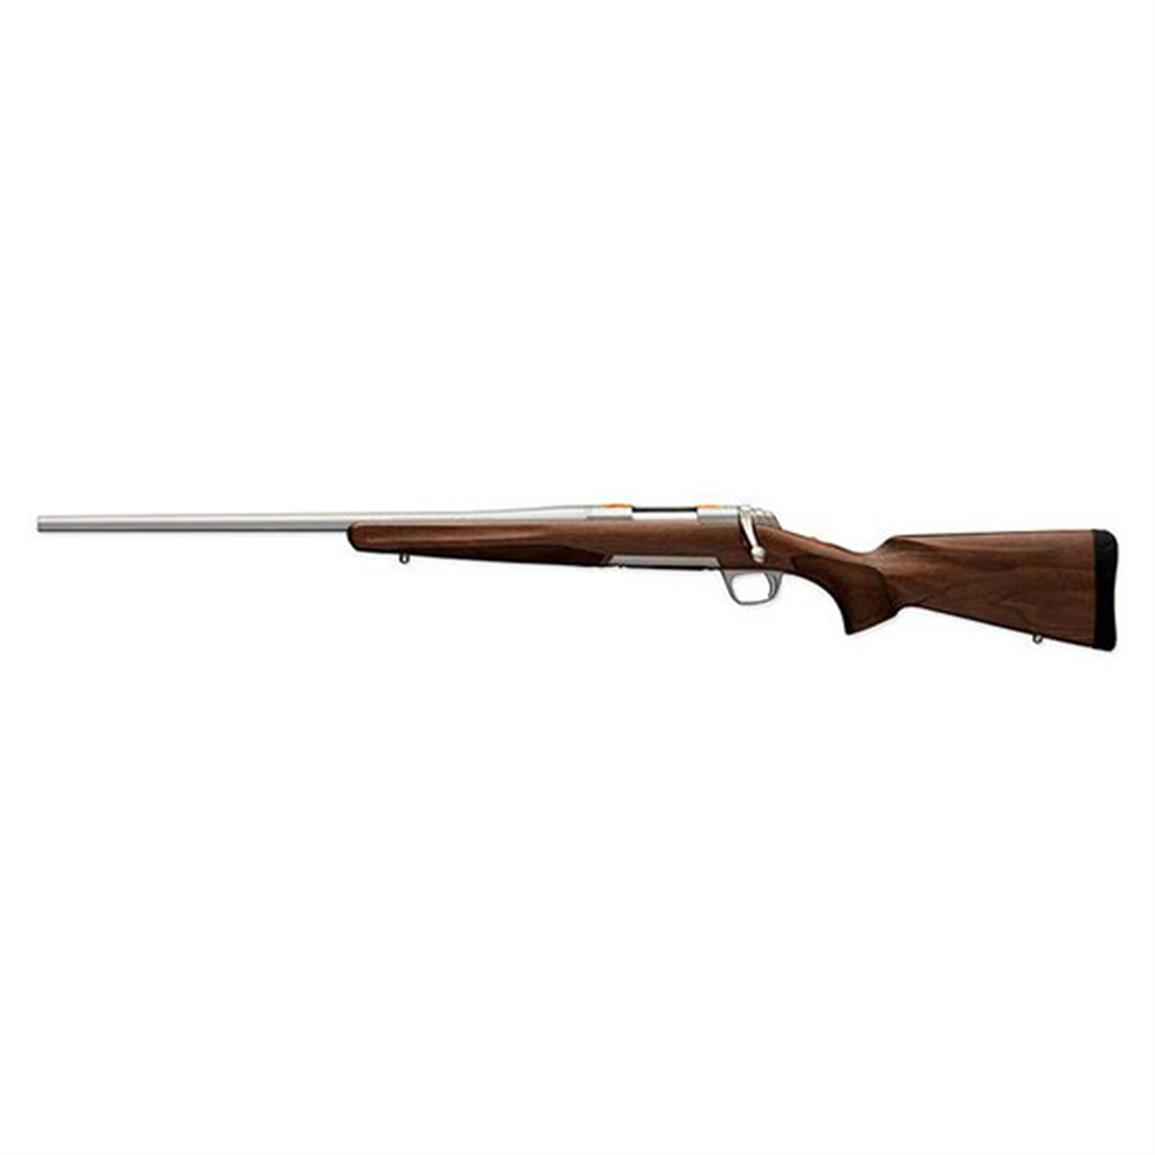 "Browning X-Bolt Stainless Hunter, Semi-Automatic, .308 Winchester, 22"" Barrel, 4+1 Rounds, Left Hand"